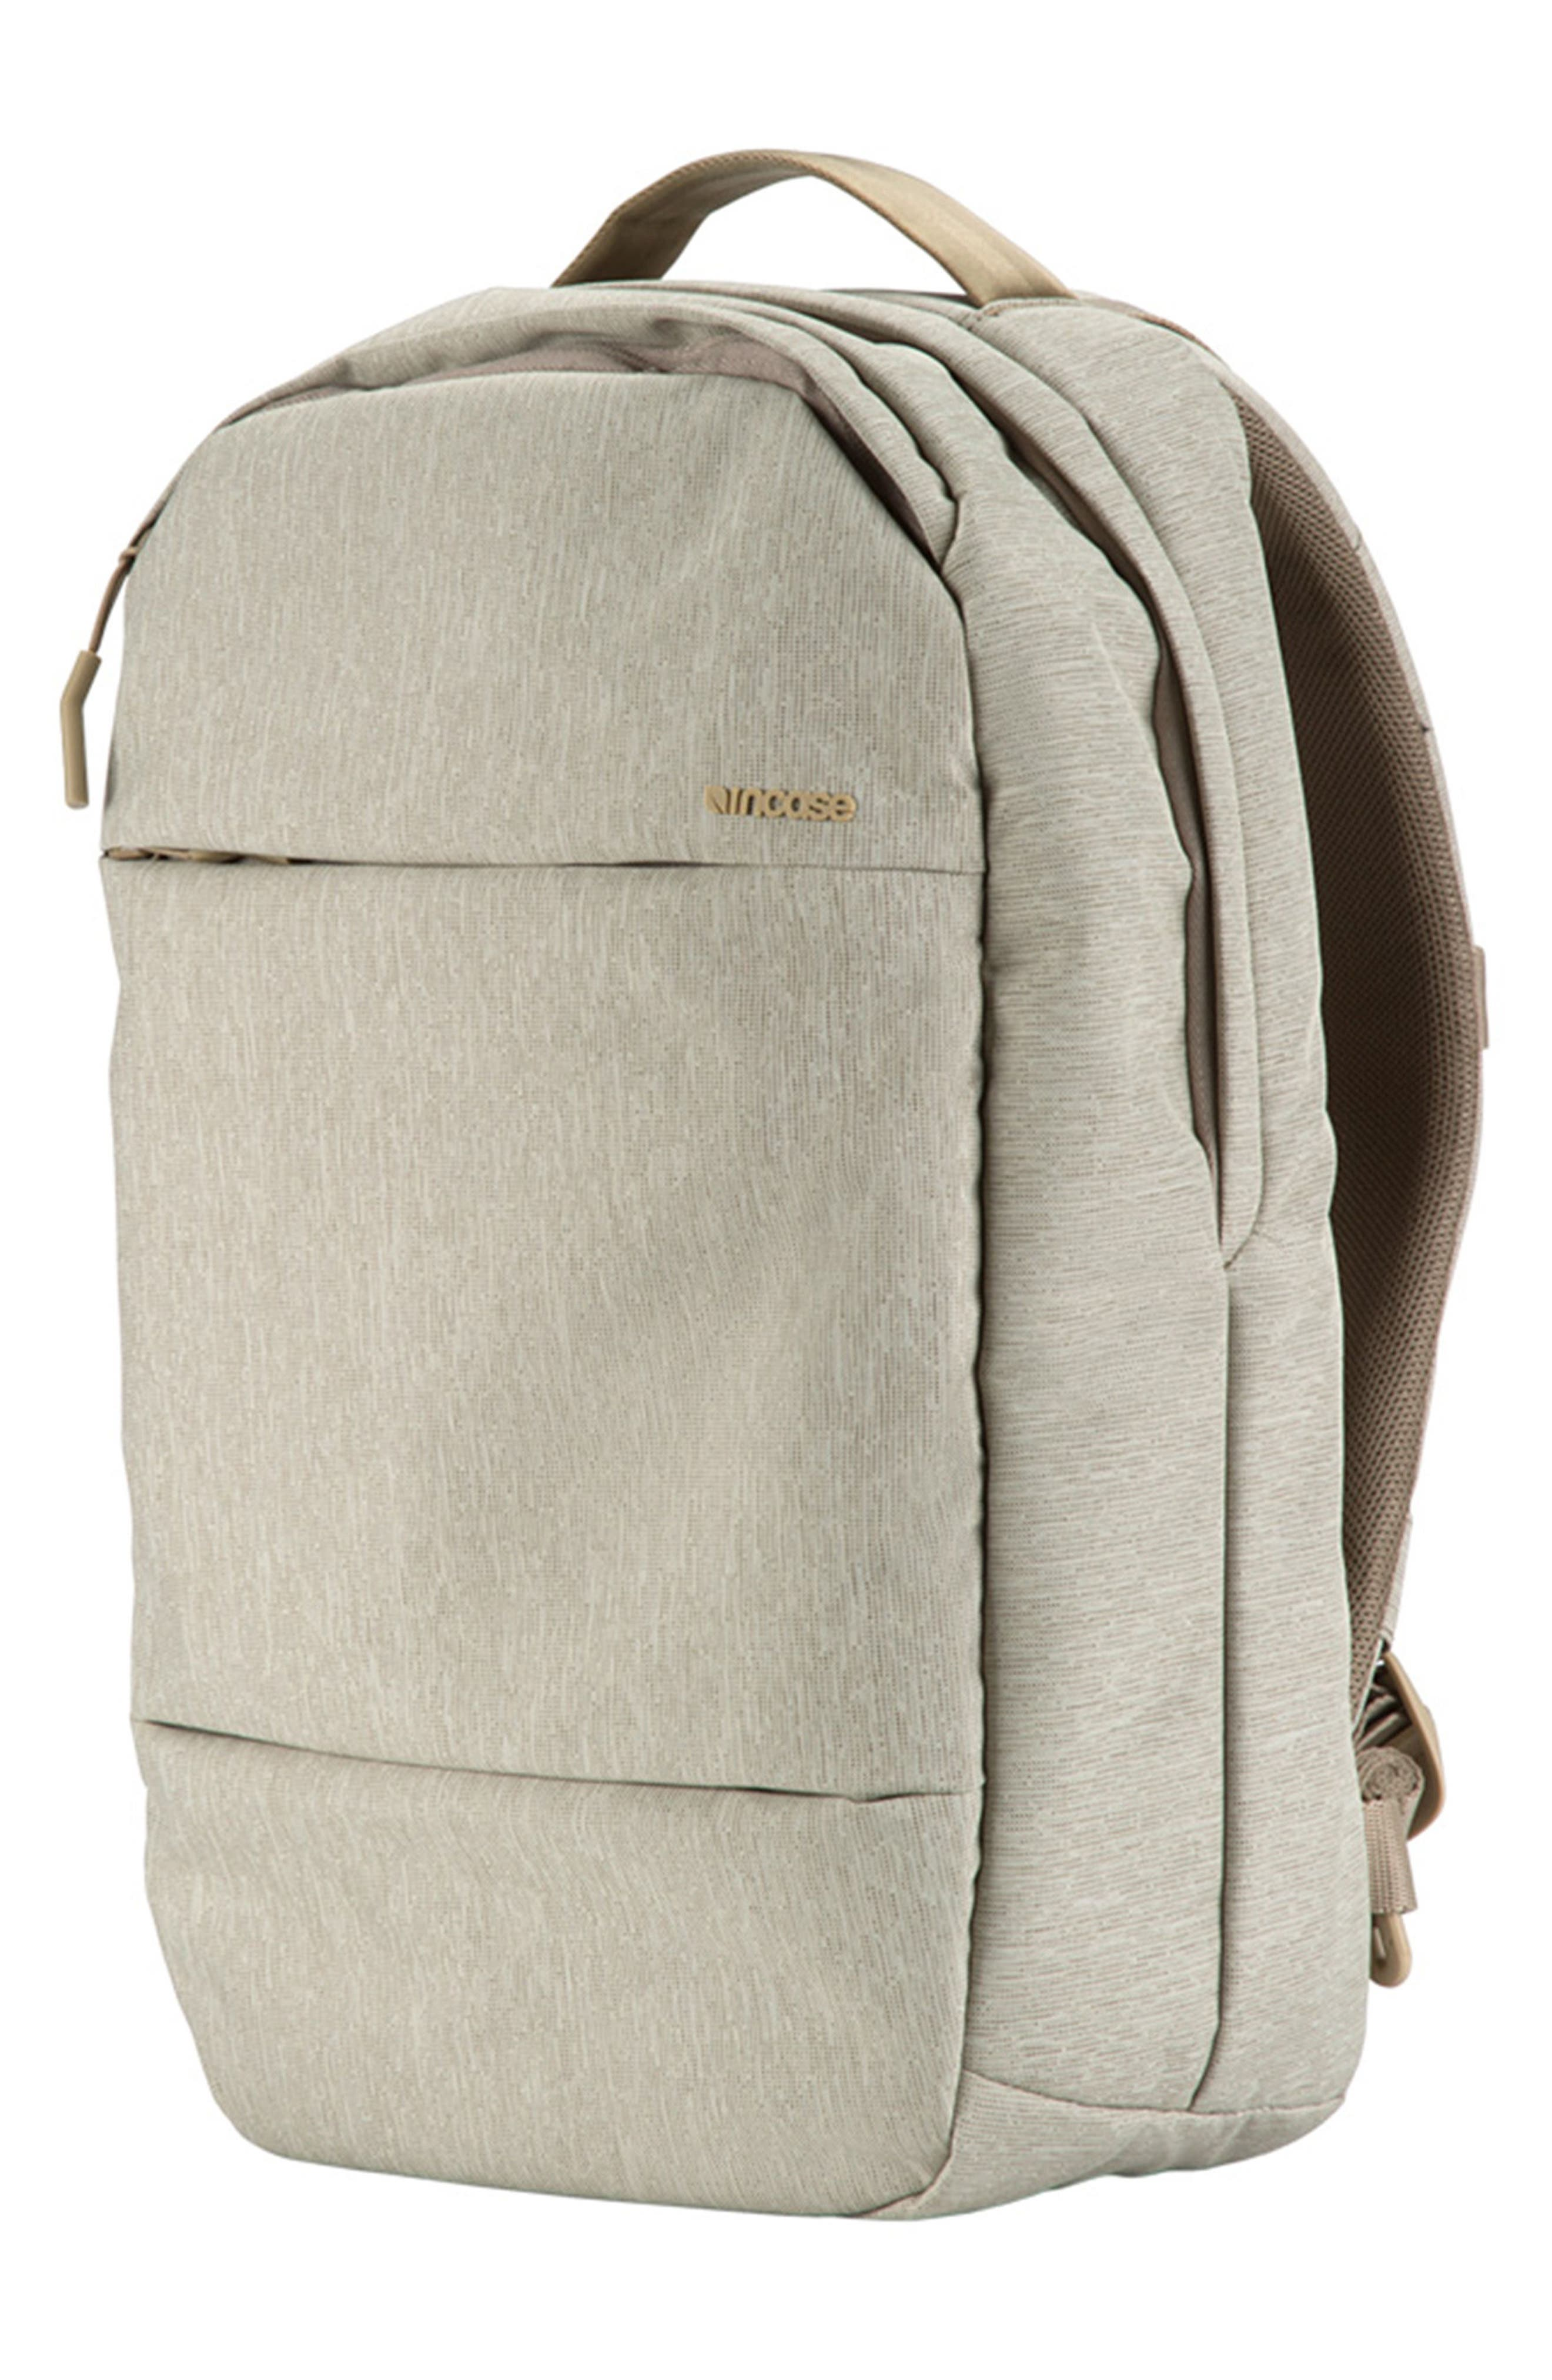 City Compact Backpack,                             Alternate thumbnail 4, color,                             HEATHER KHAKI